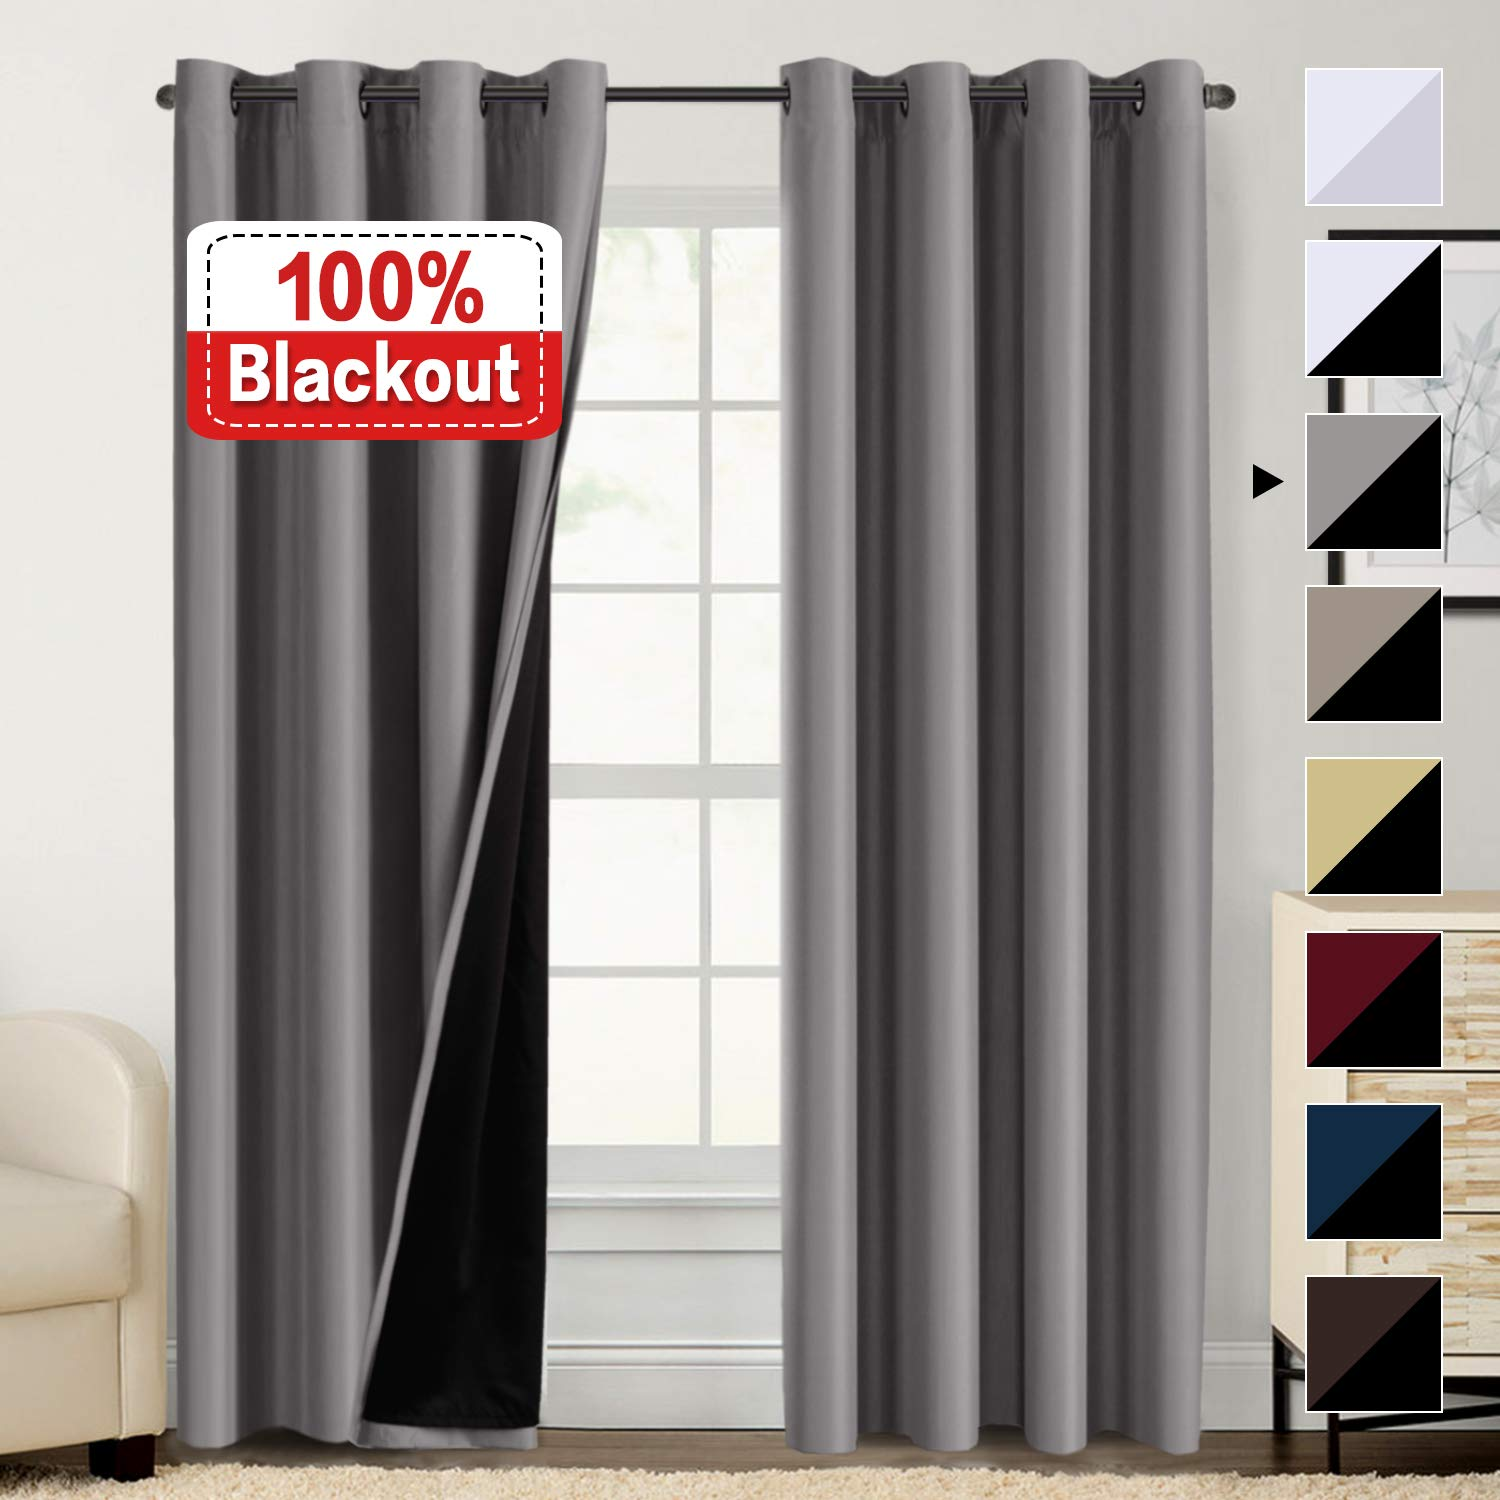 100% Blackout Curtains for Living Room Double Layer Faux Silk Curtains Room Darkening Thermal Insulated Energy Saving Grommet Window Treatment Panels (Grey, 52 by 84-inch) by Flamingo P